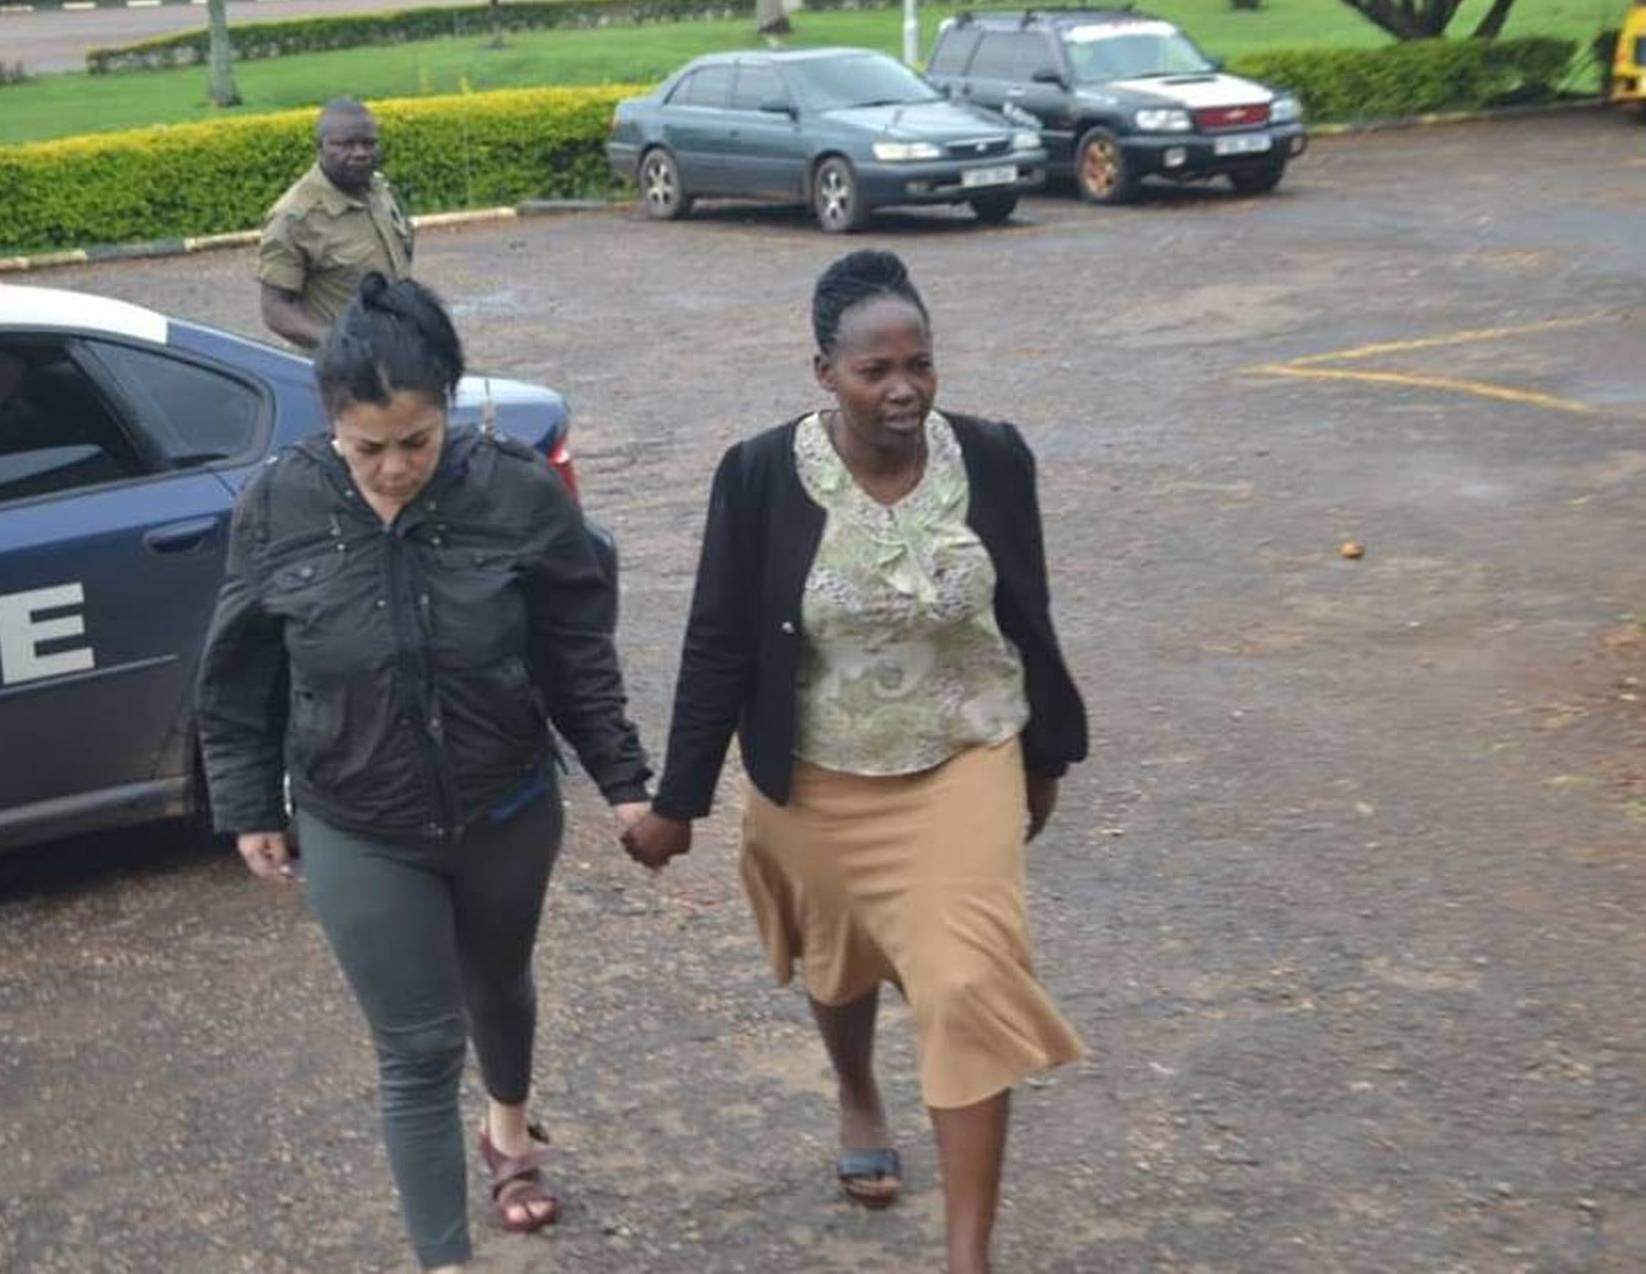 Venezuelan nationaL, 24, arrested by the Aviation Police at Entebbe being escorted to a protected facility